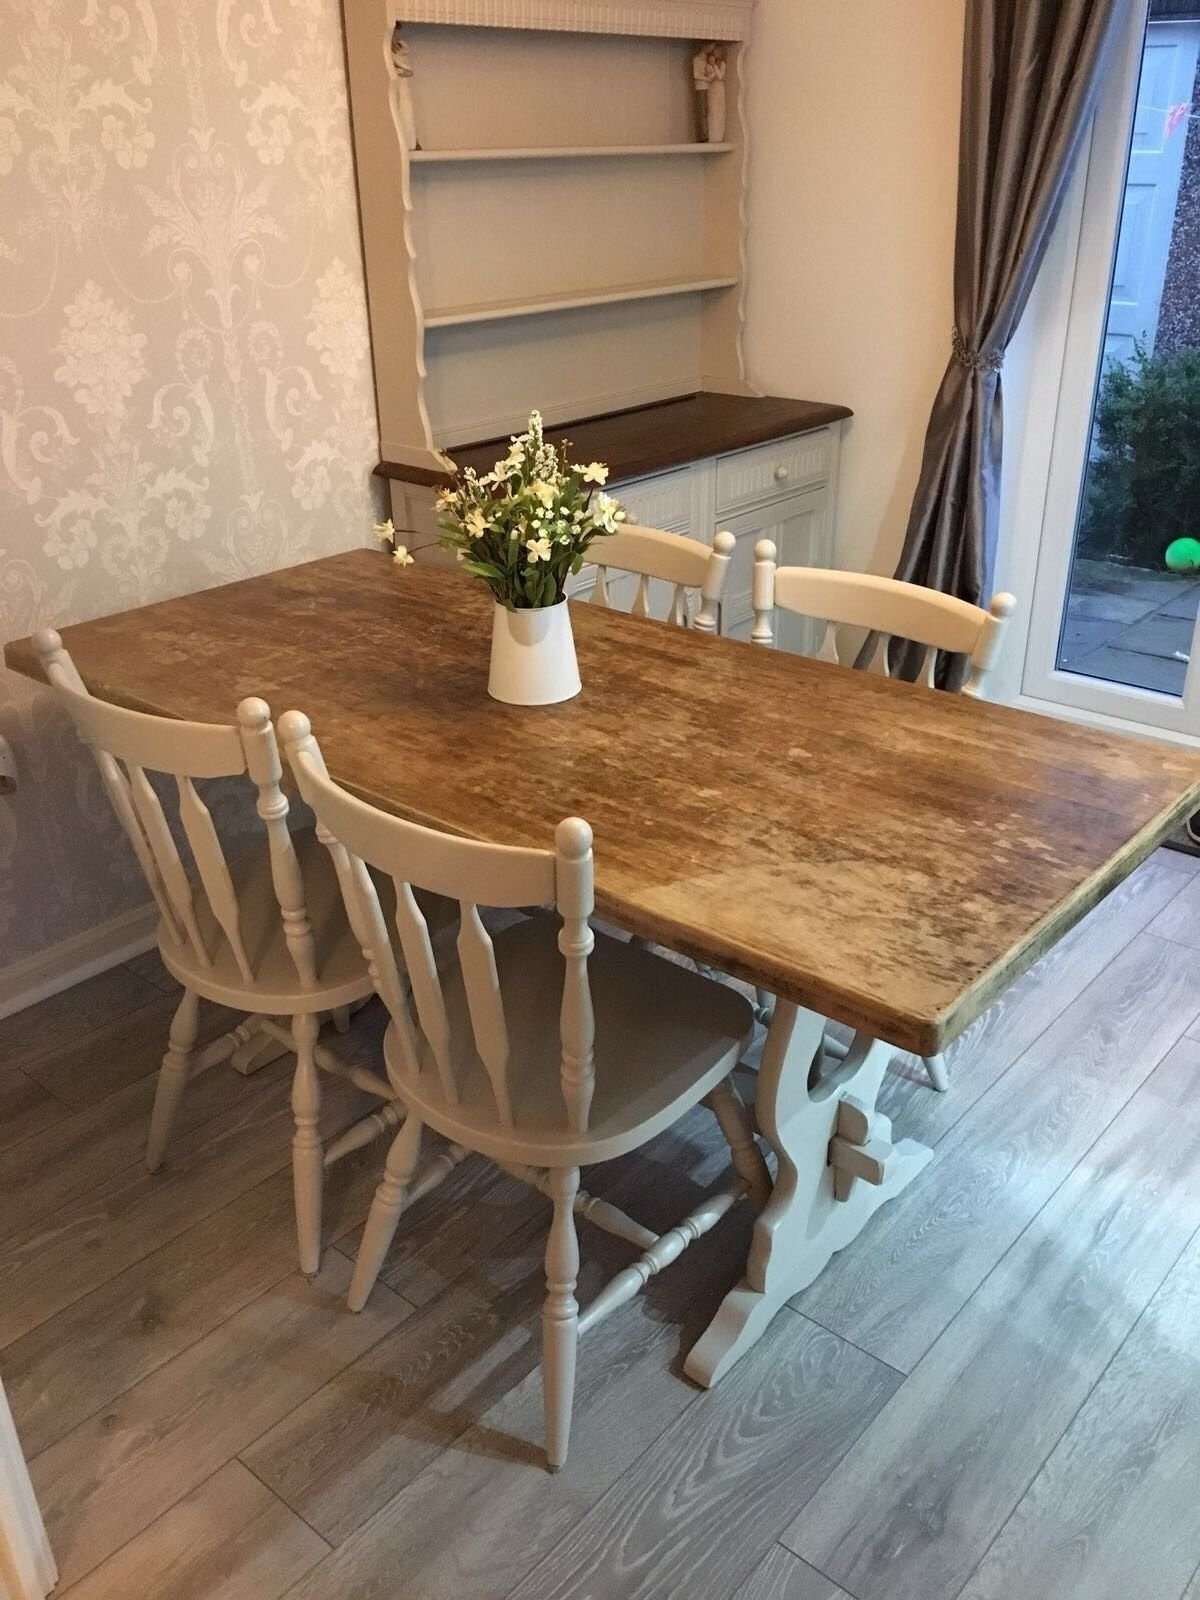 Delicieux Shabby Chic Dining Table And Chairs Farmhouse U2022 £249.99